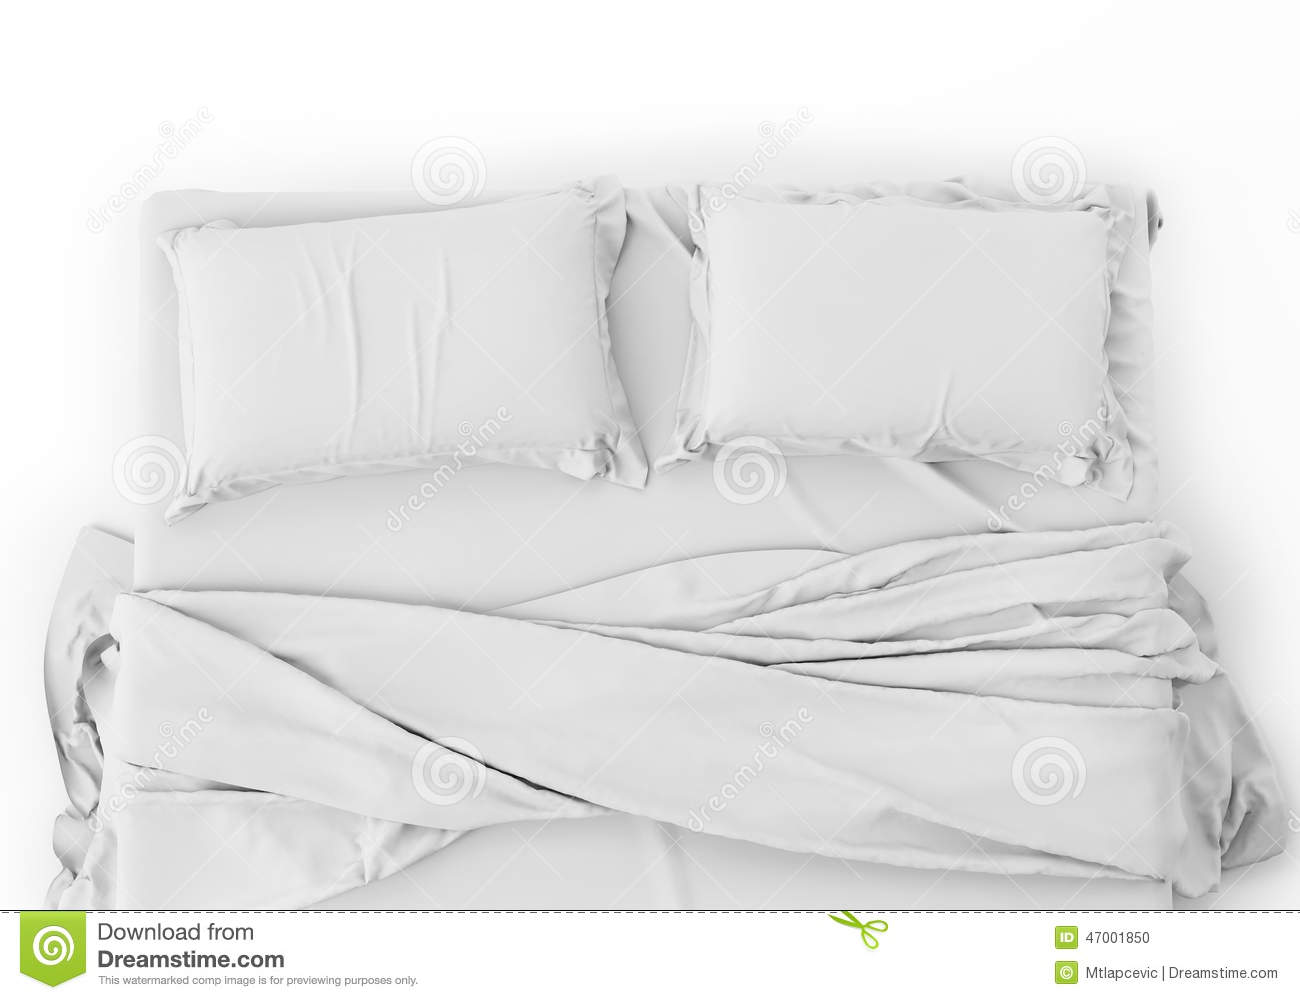 how to keep bed sheets white